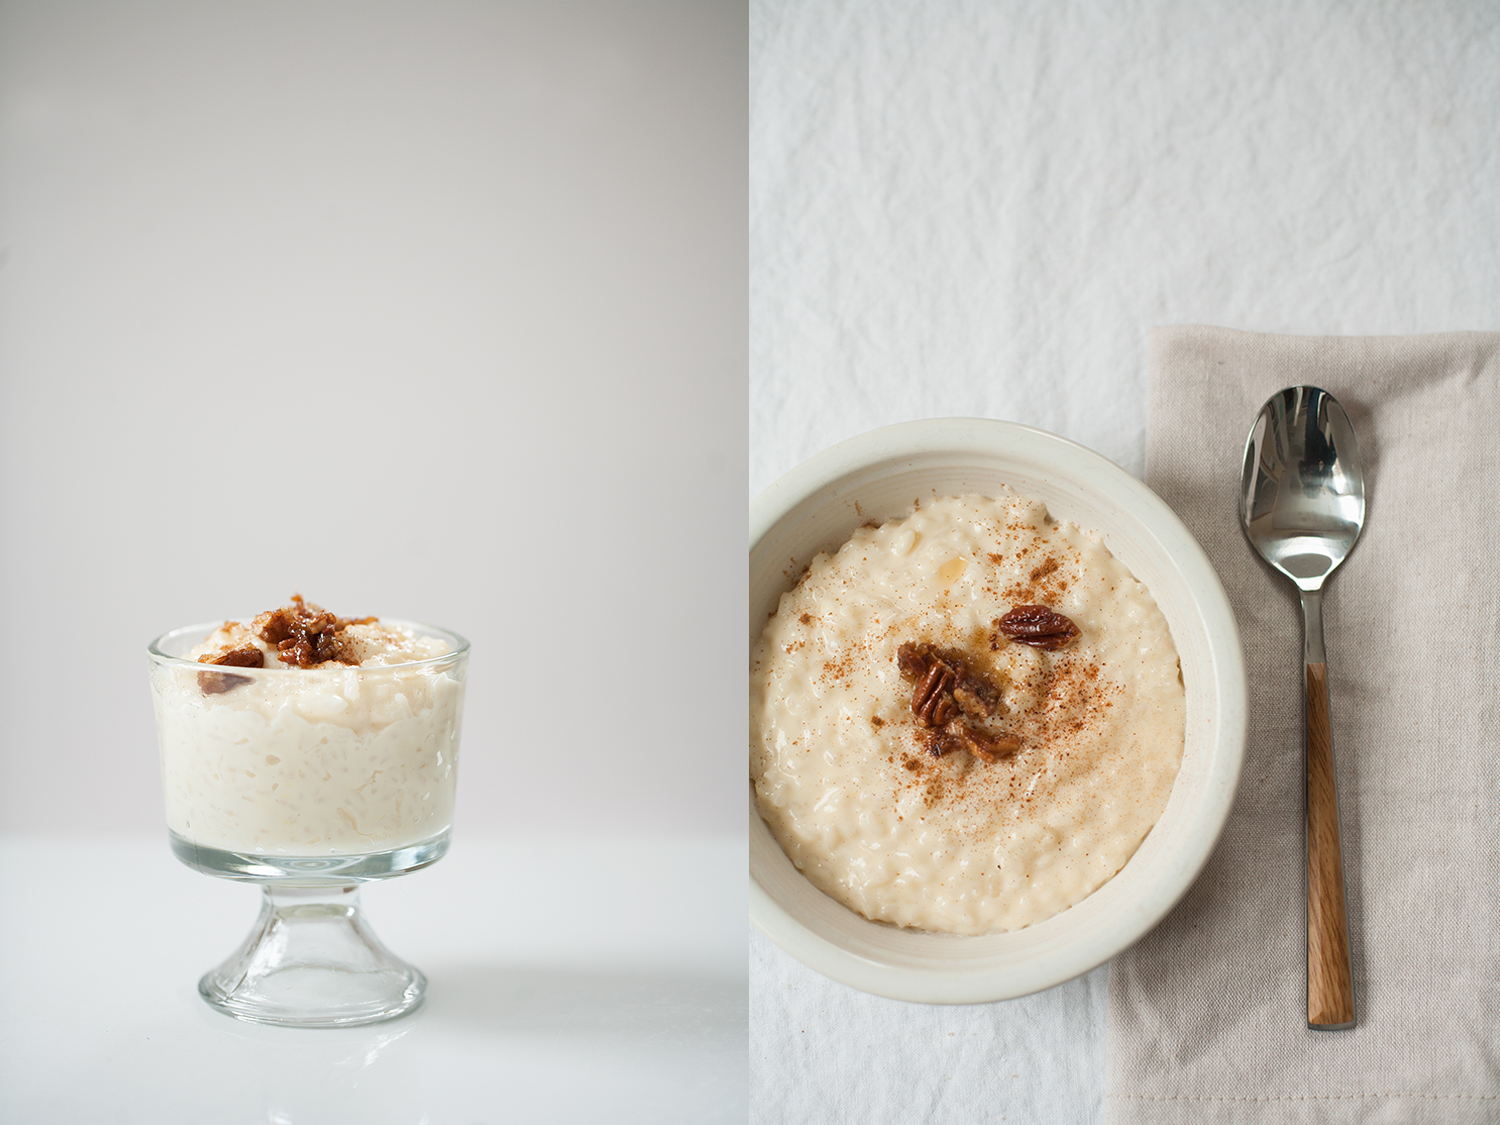 sweet rice pudding, perfect as dessert or breakfast